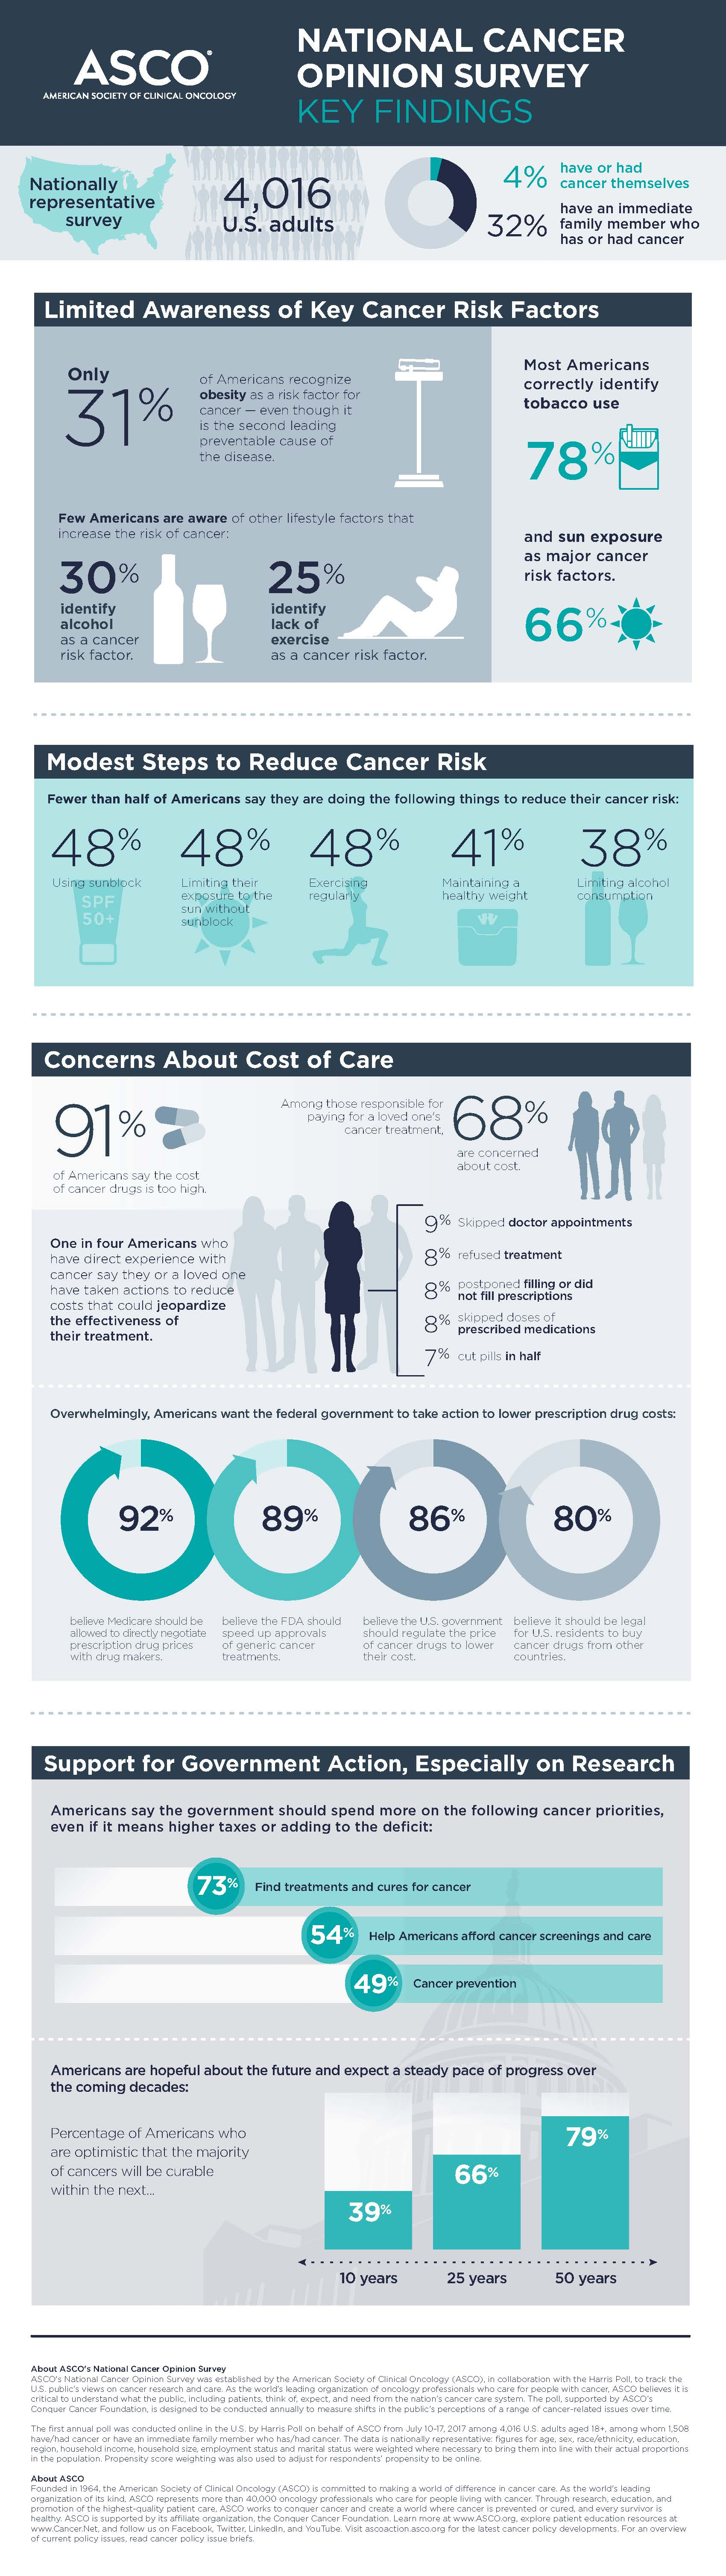 ASCO National Cancer Opinion Index Infographic